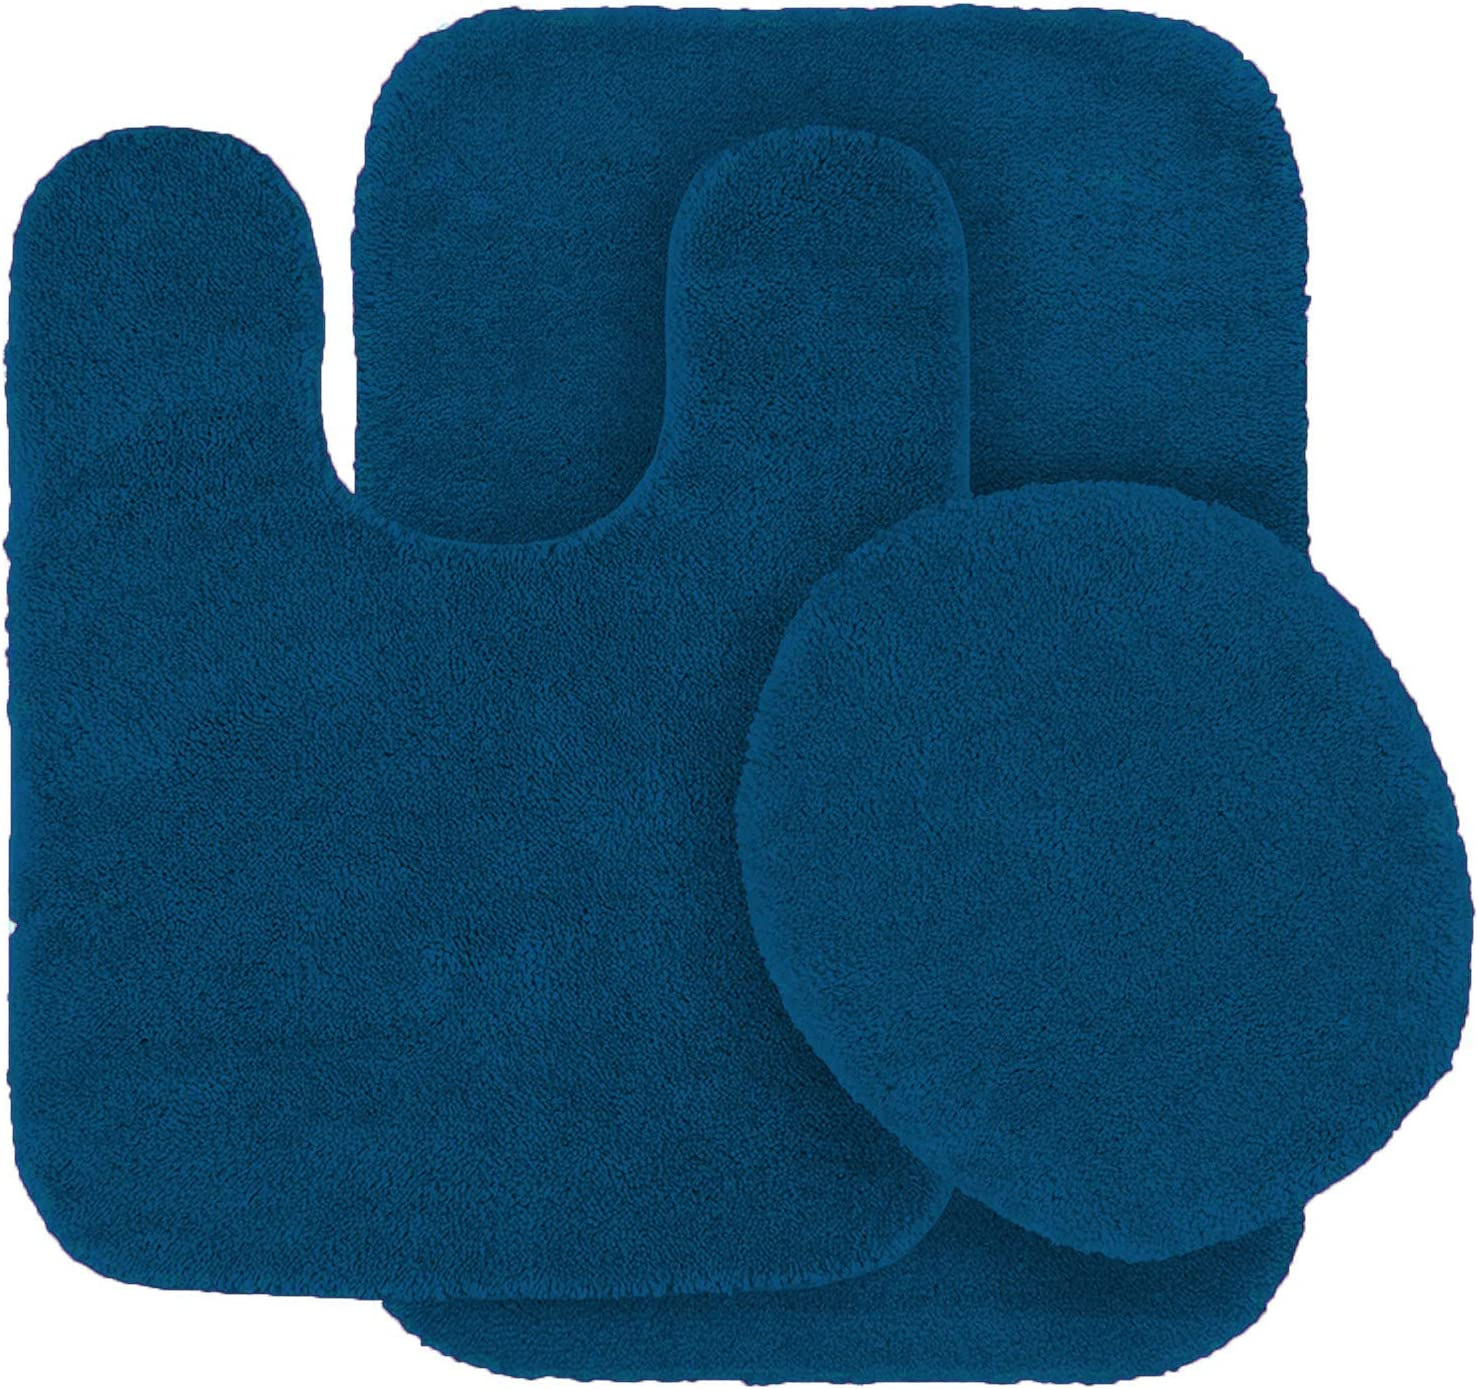 Mk Home Collection 3 Piece Bathroom Rug Set Bath Rug, Contour Mat, & Lid Cover Non-Slip with Rubber Backing Solid Royal Blue New